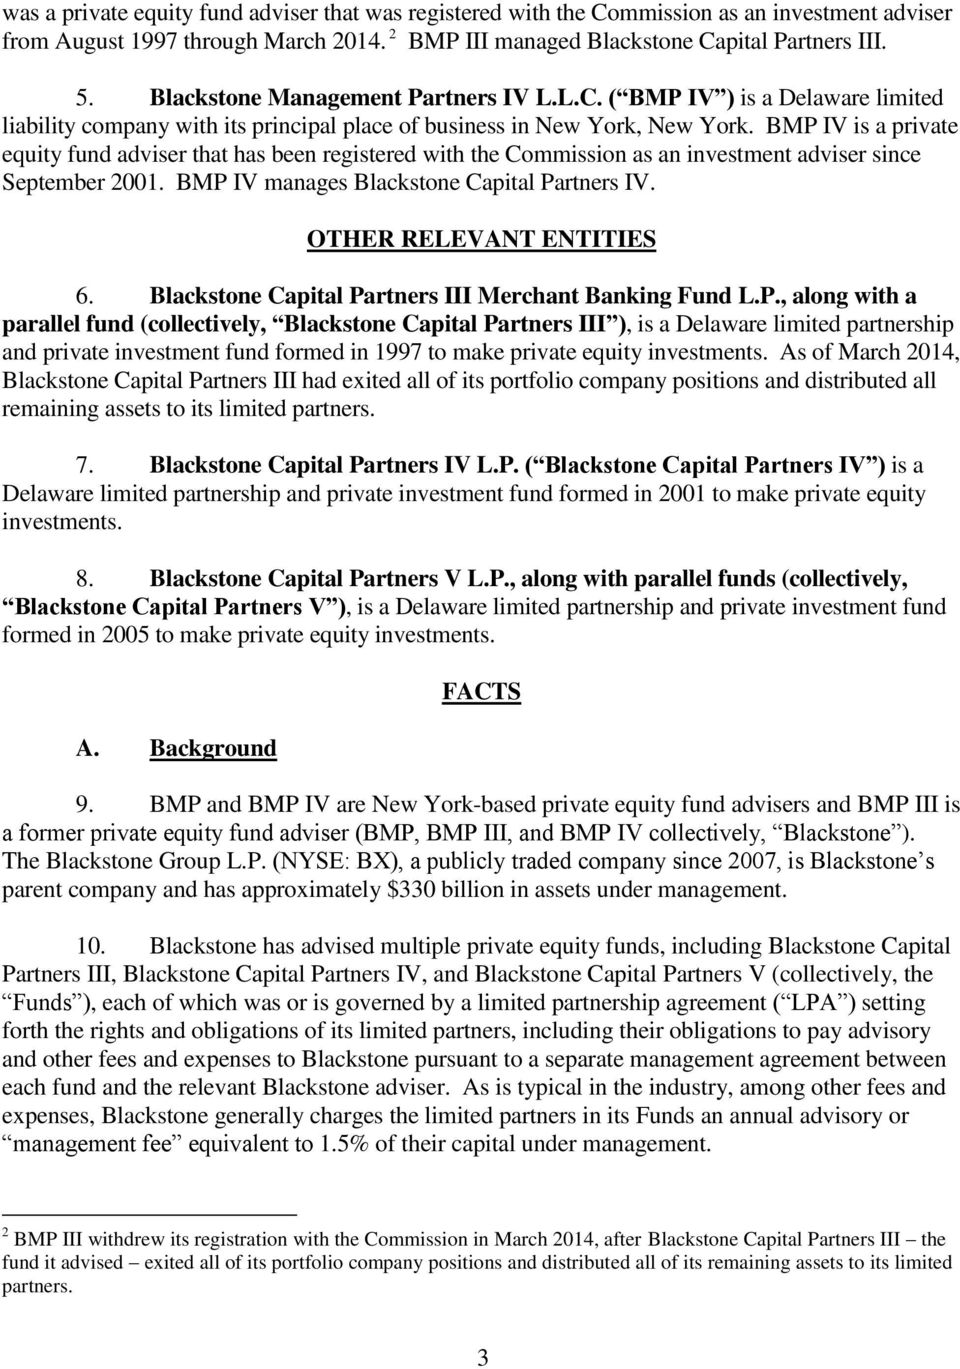 BMP IV is a private equity fund adviser that has been registered with the Commission as an investment adviser since September 2001. BMP IV manages Blackstone Capital Partners IV.